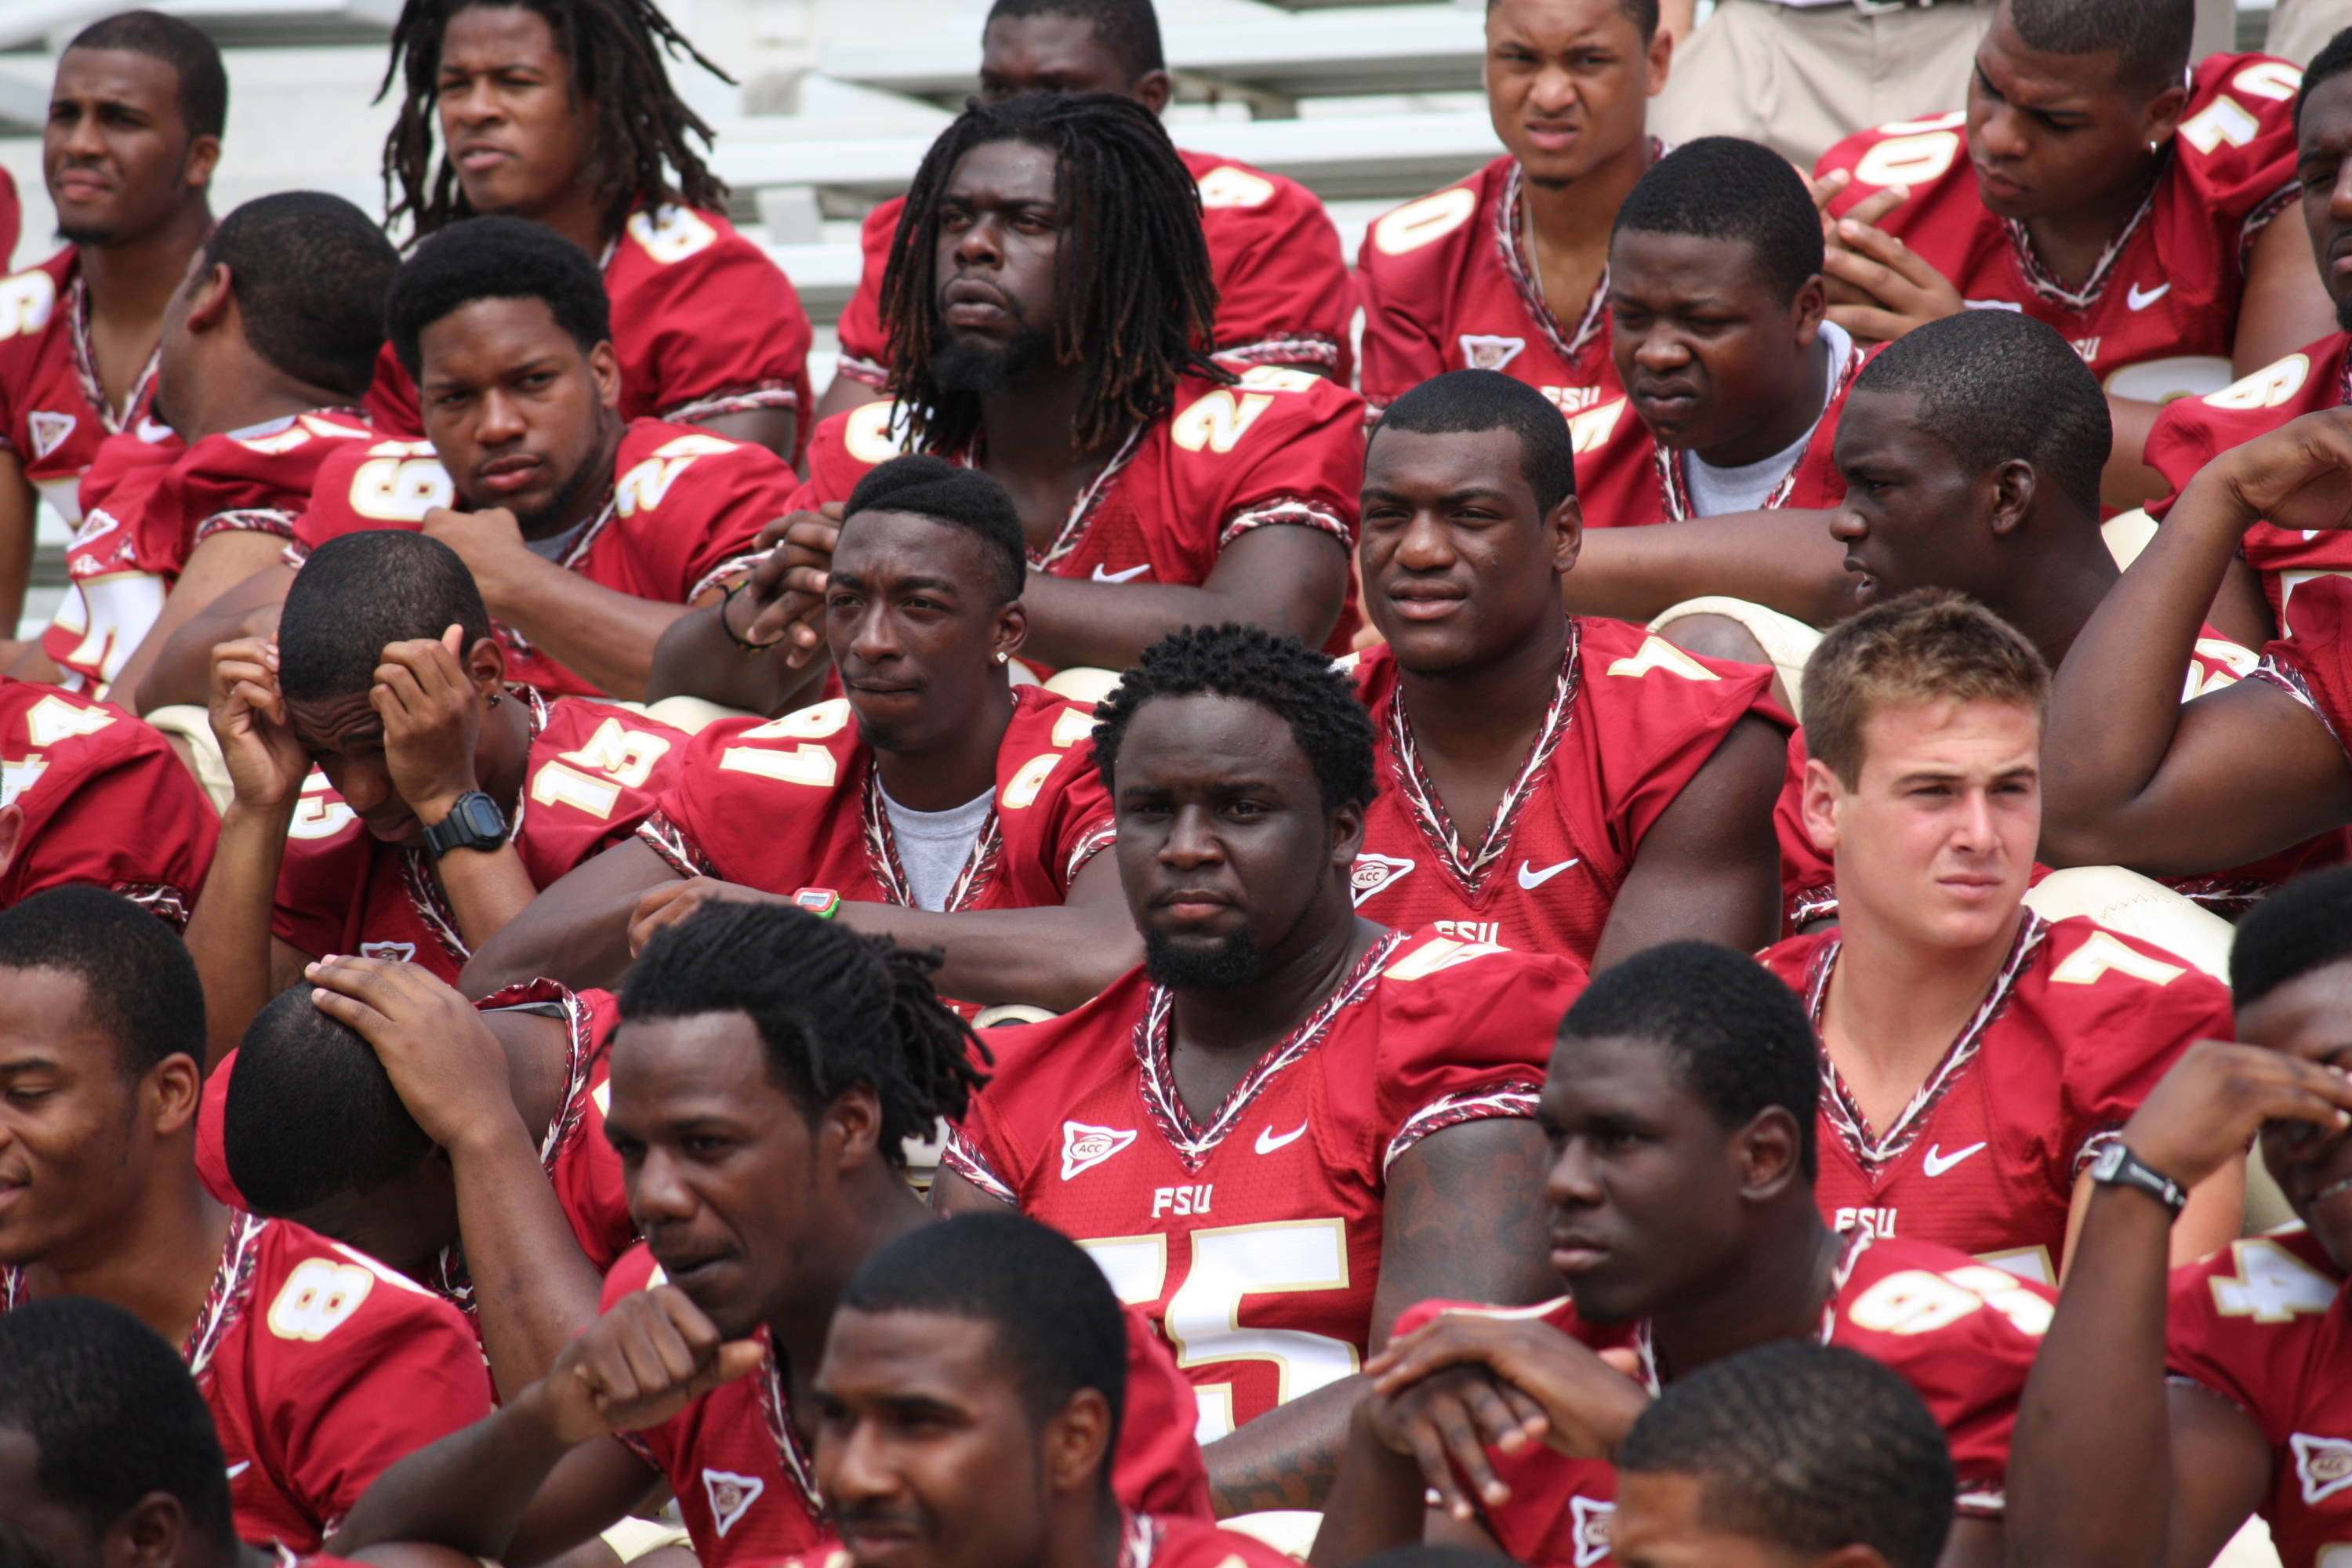 Kenny Shaw, Chrisitan Jones, Arrington Jenkins, Eric Beverly, Jacobbi McDaniel and the rest of the team get ready for the team photo.